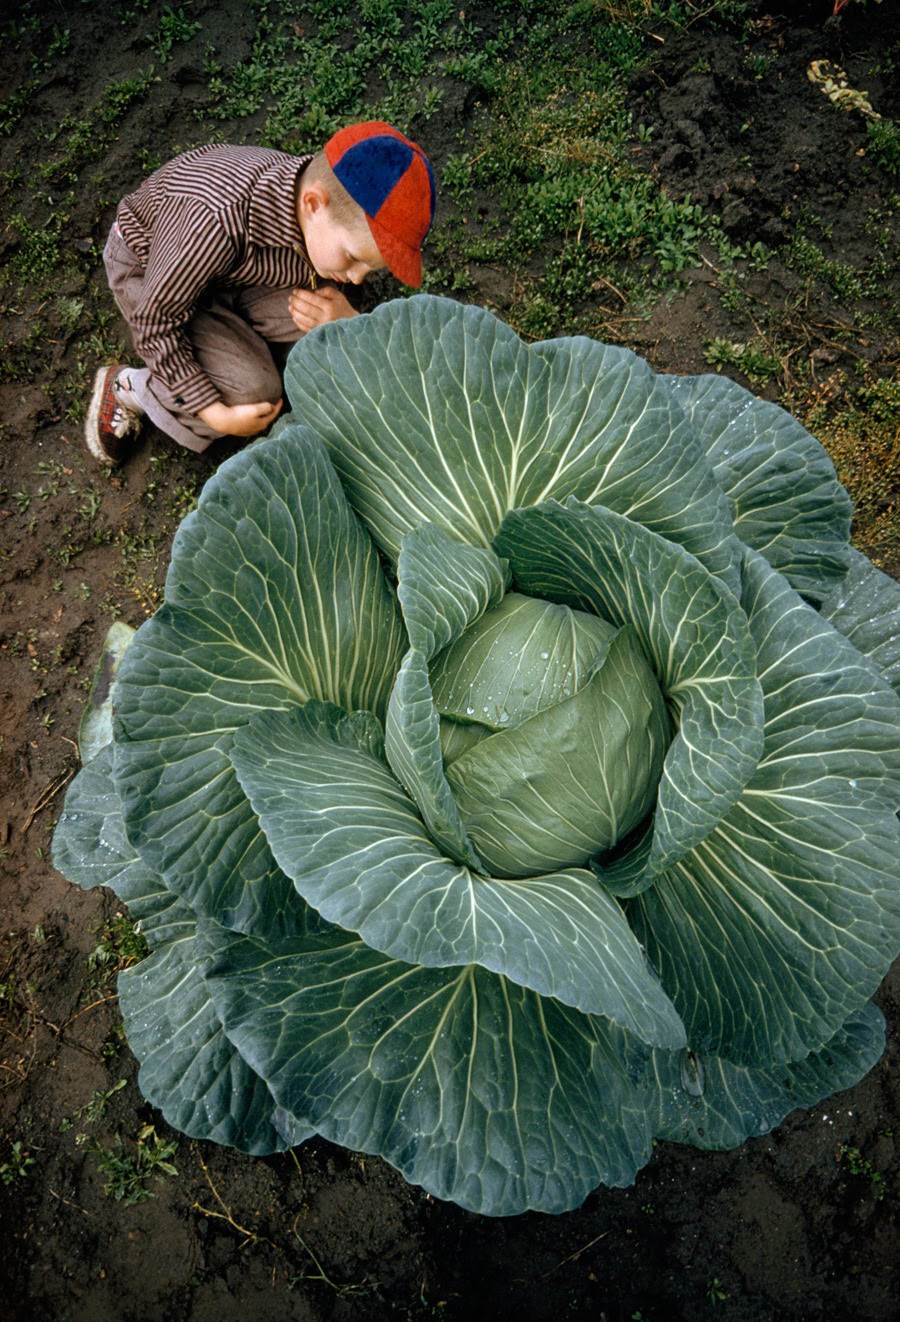 A little boy is dwarfed by a supersized cabbage in Matanuska Valley, Alaska, July 1959.Photograph by Thomas J. Abercrombie, National Geographic